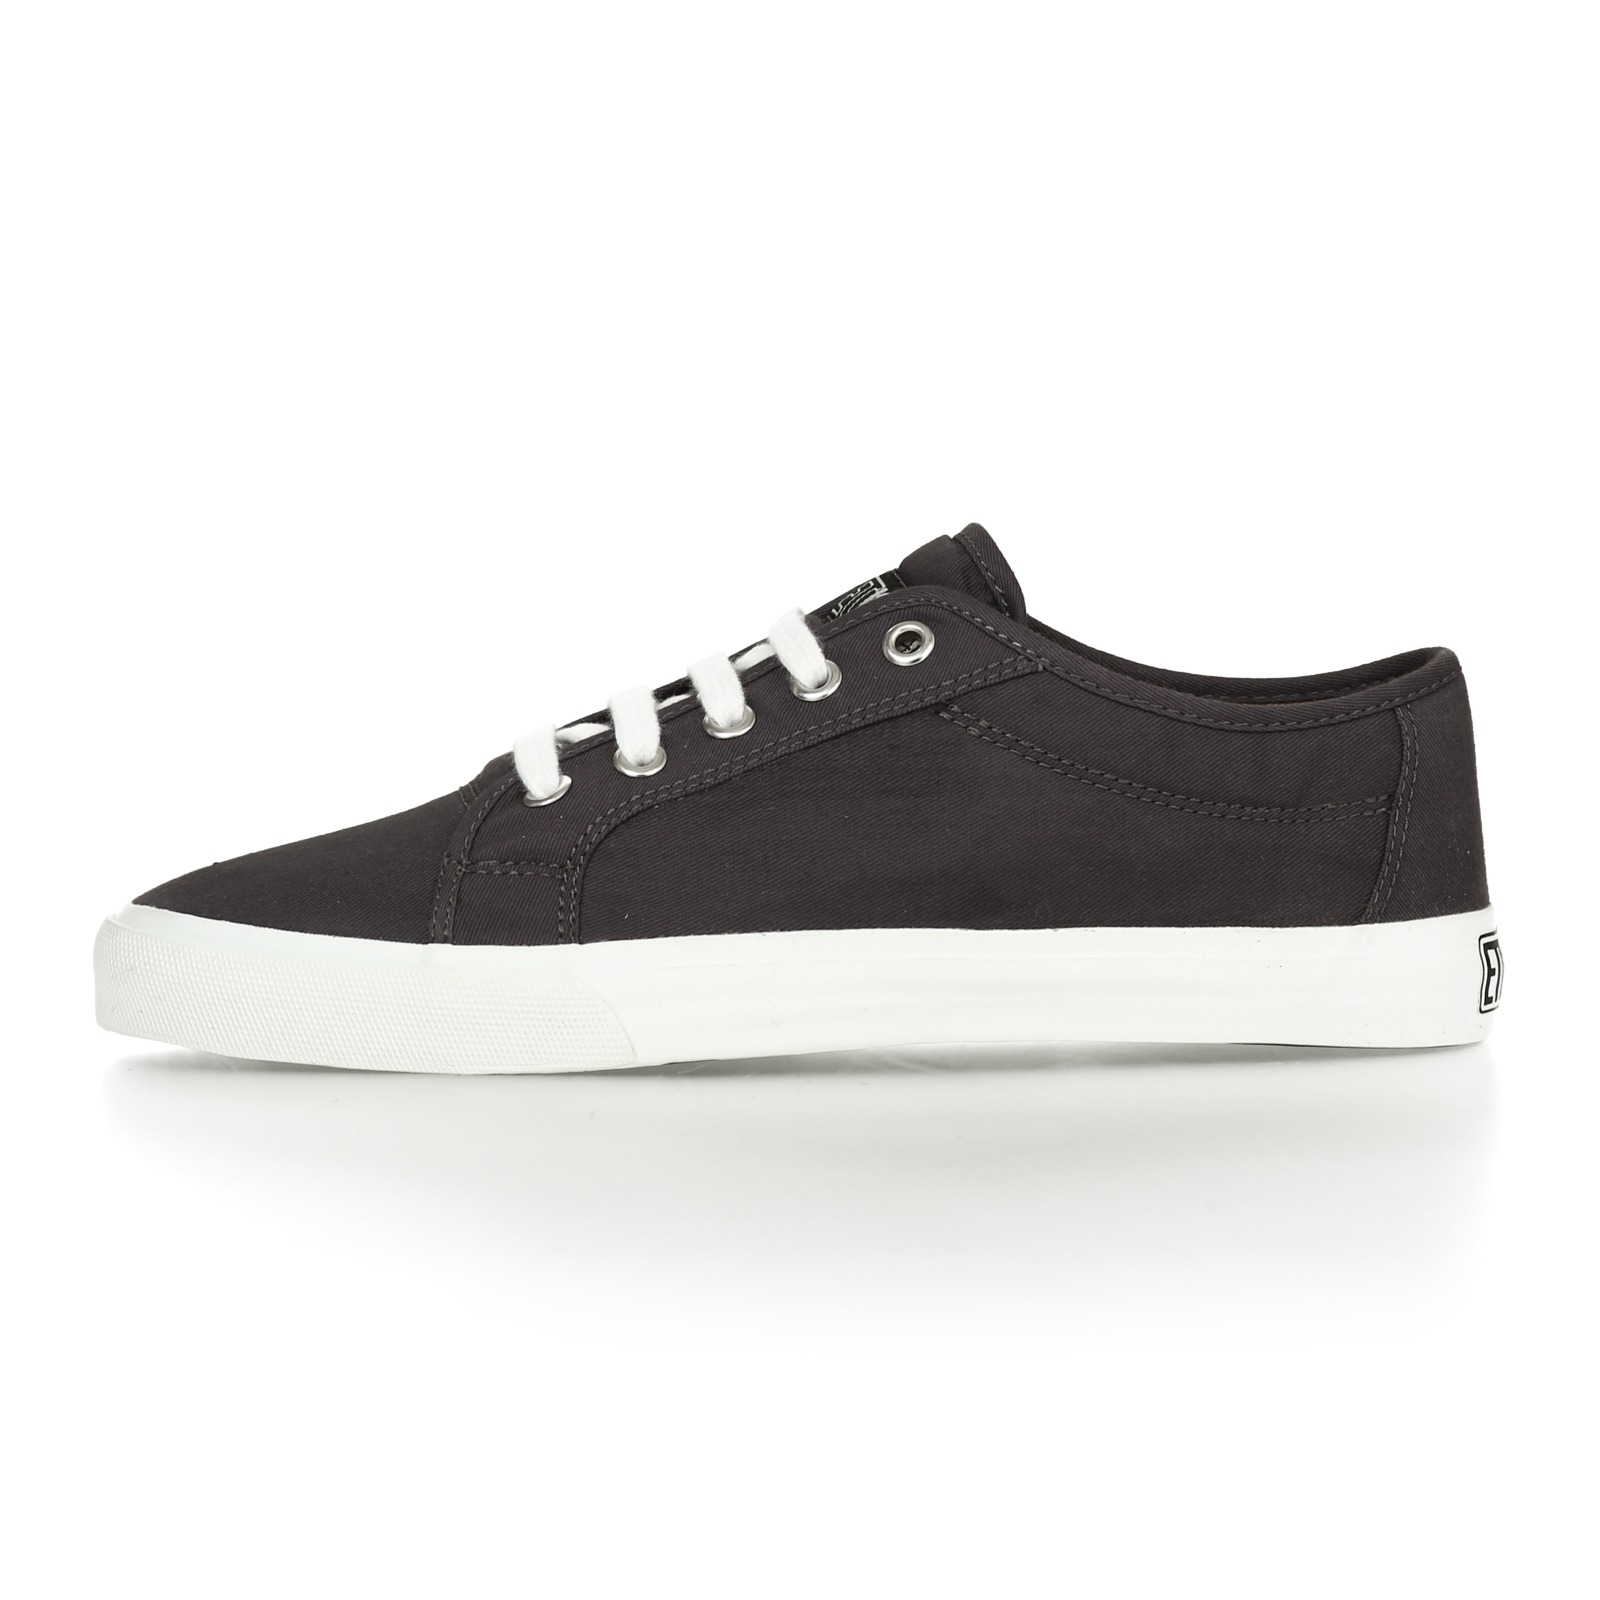 FAIR SKATER COLLECTION PEWTER GREY – OUTLET